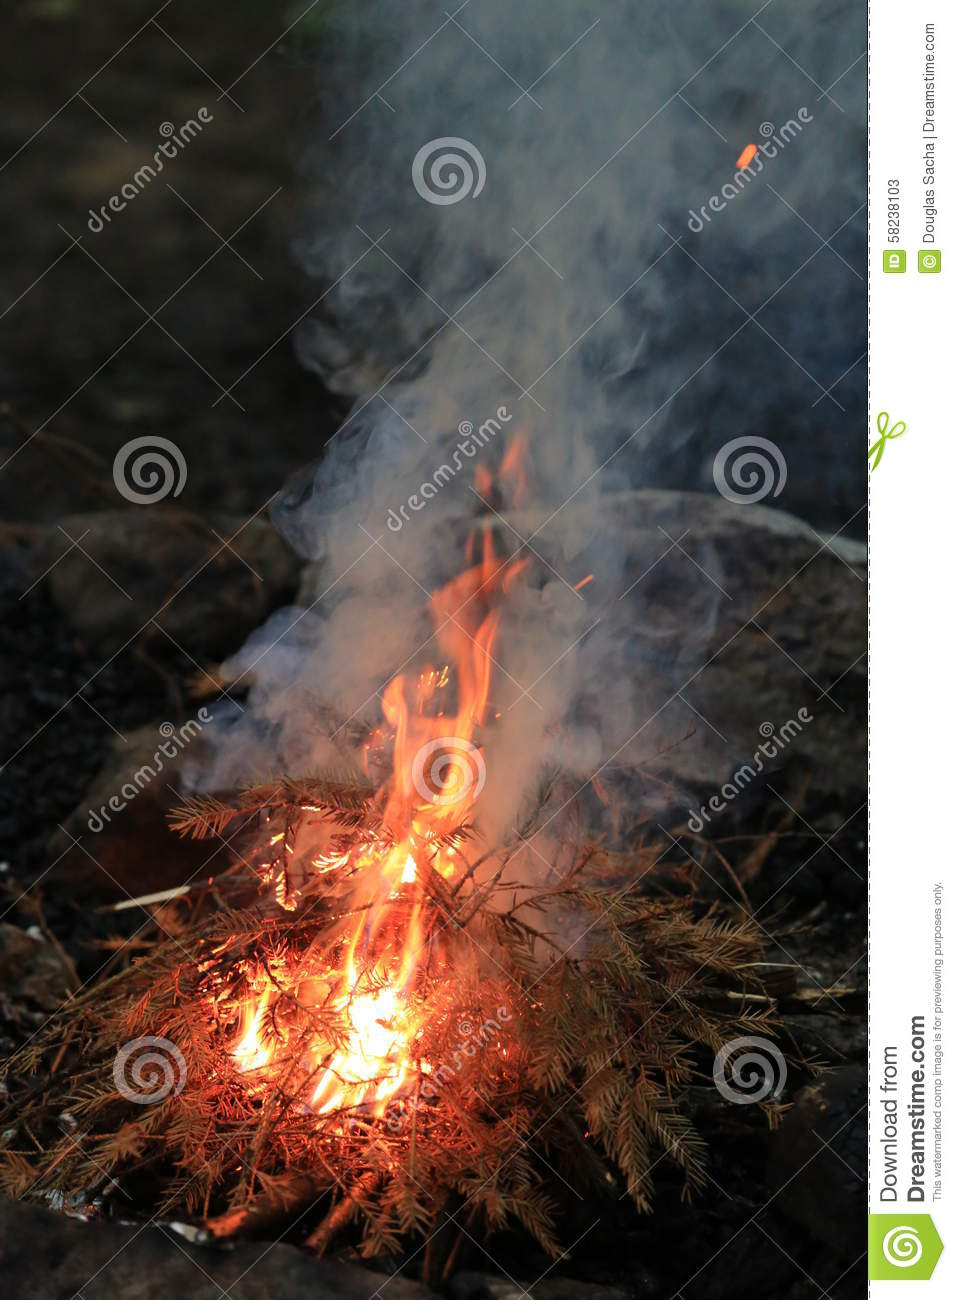 Flames And Smoke Rise From The Fire Stock Photo Image